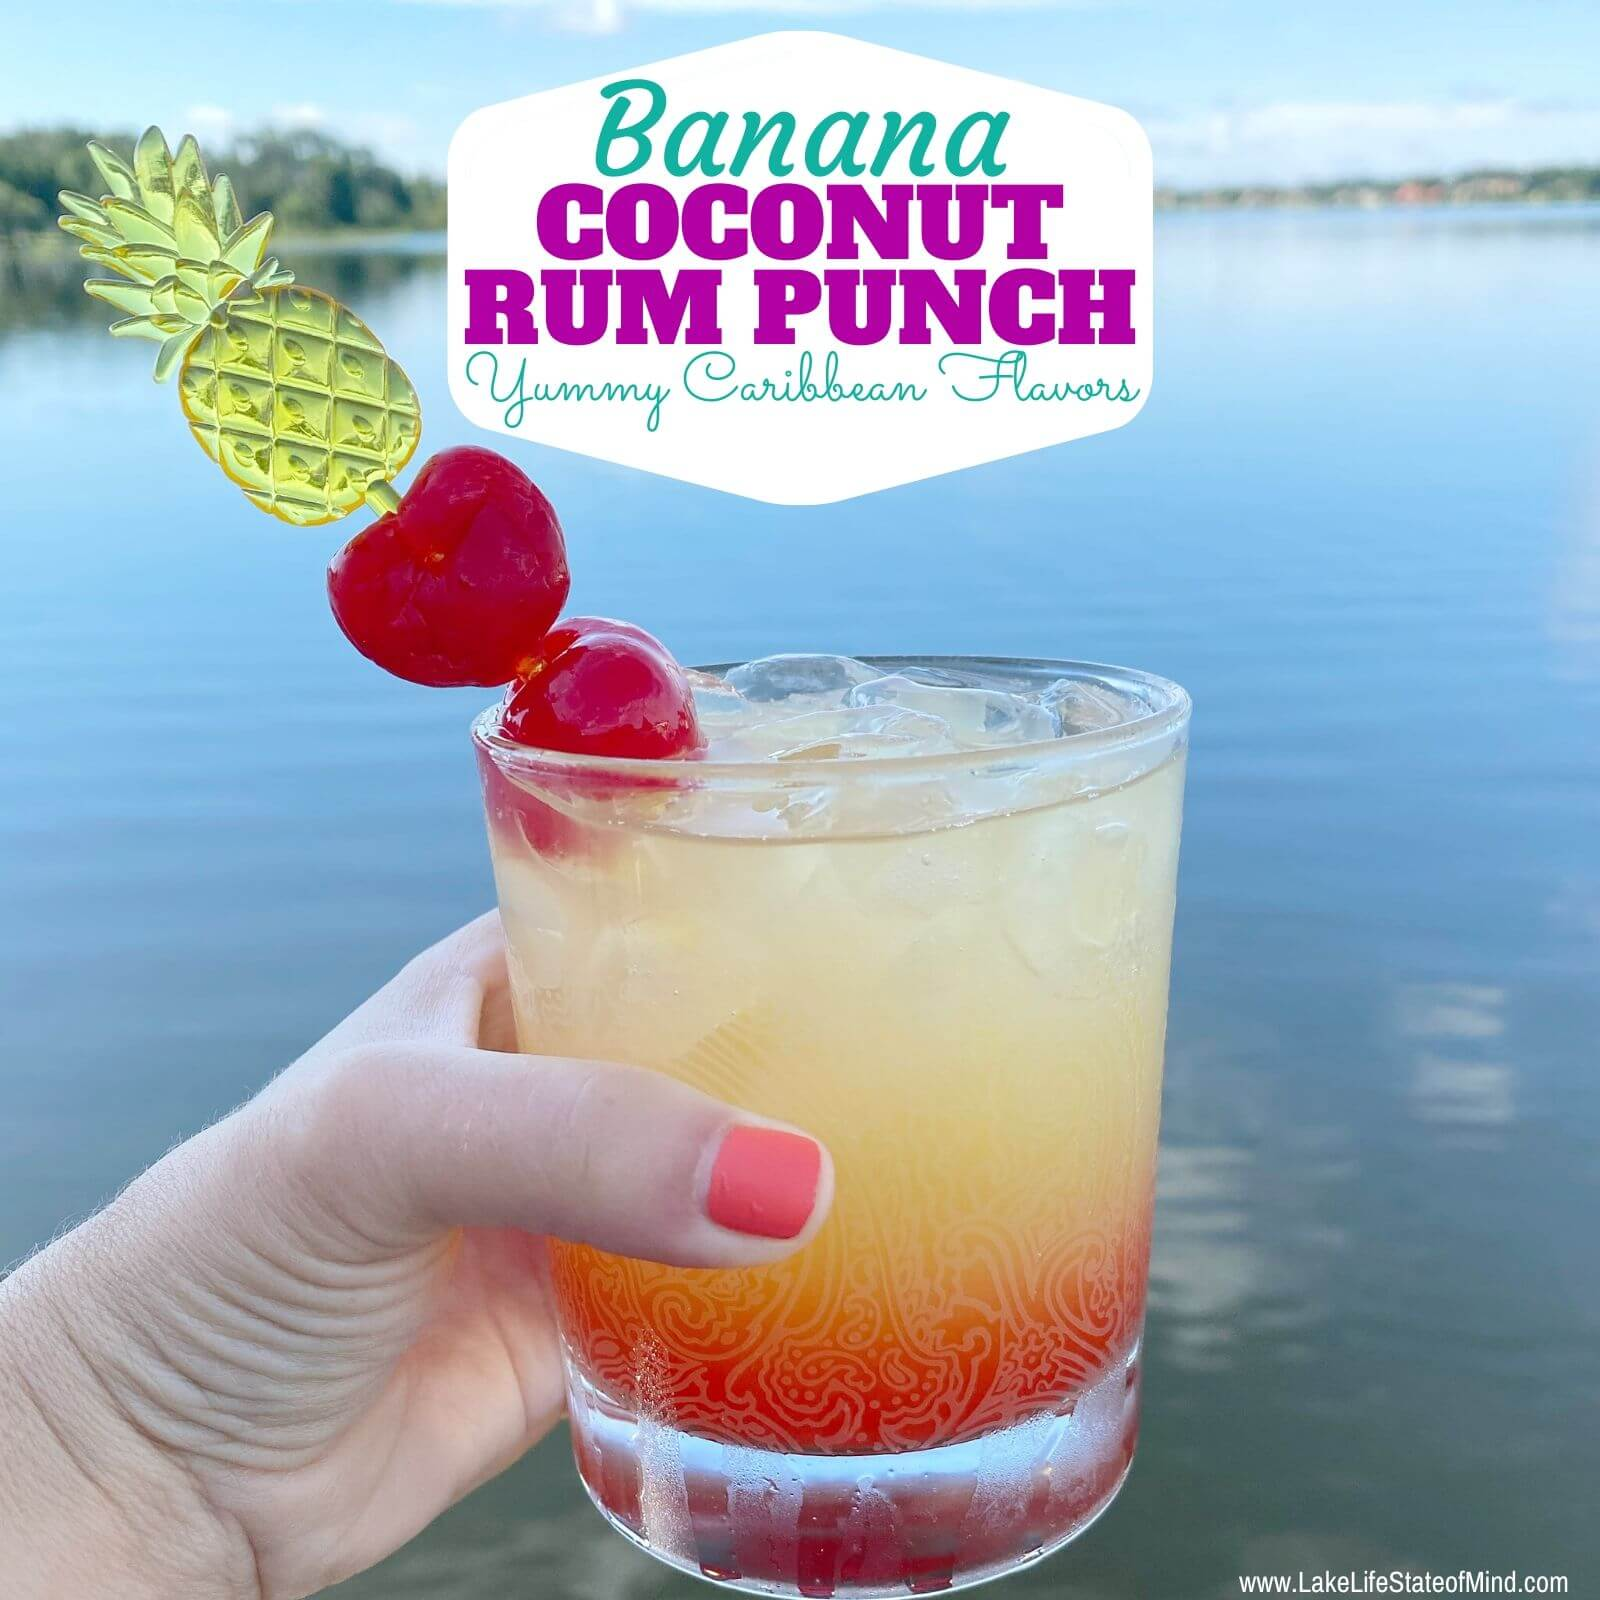 Banana Coconut Rum Punch Recipe